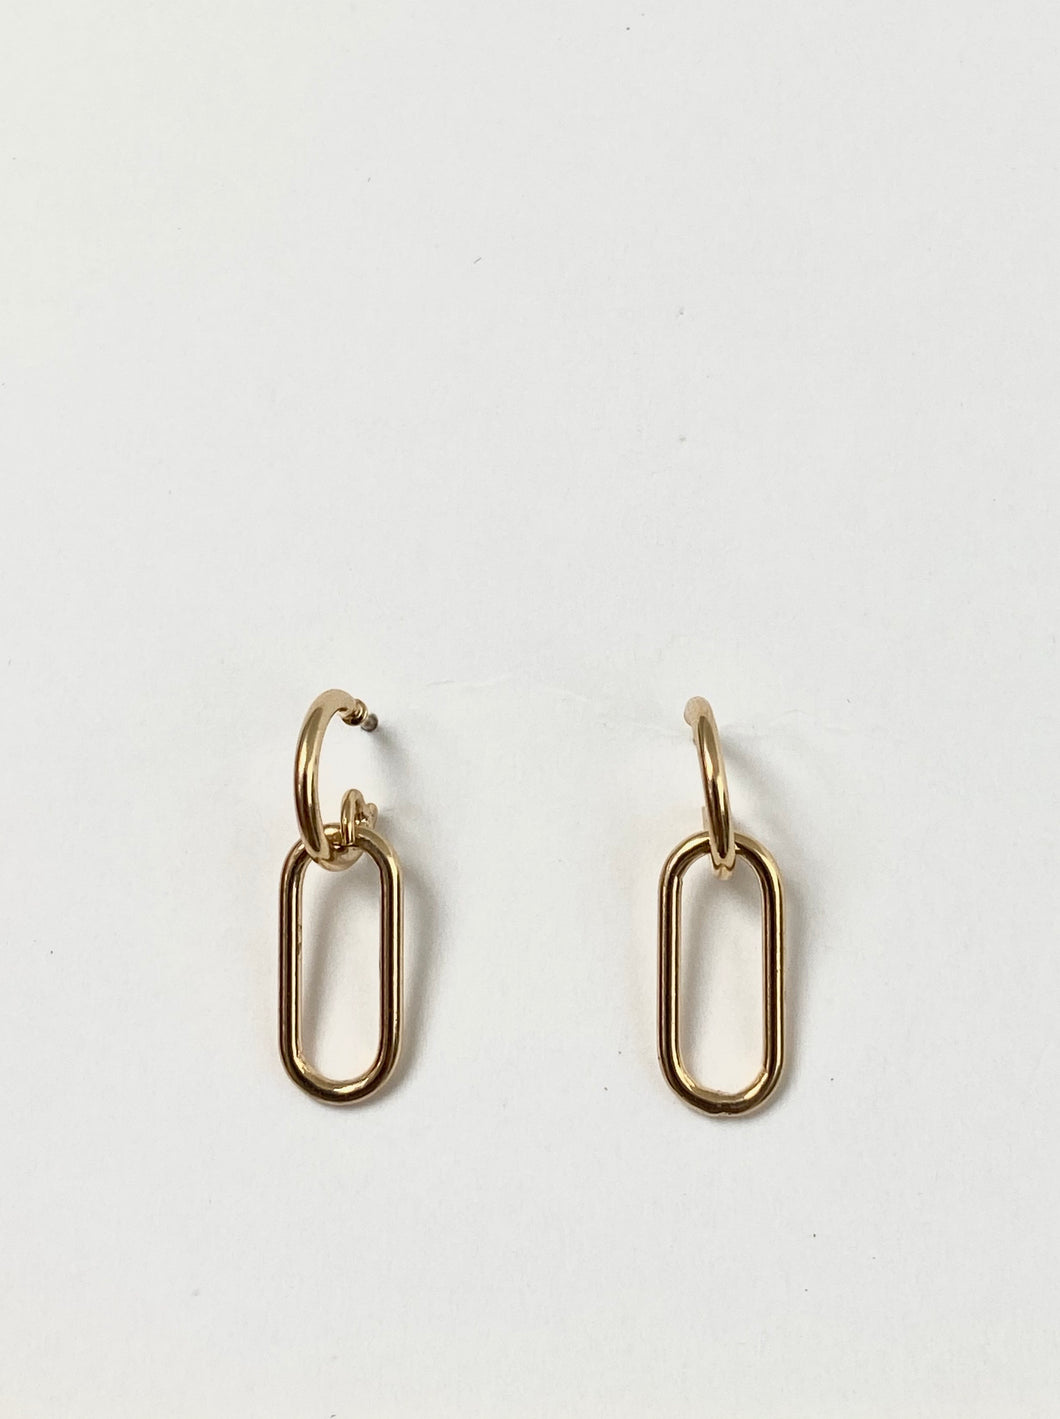 Hoops attached earrings